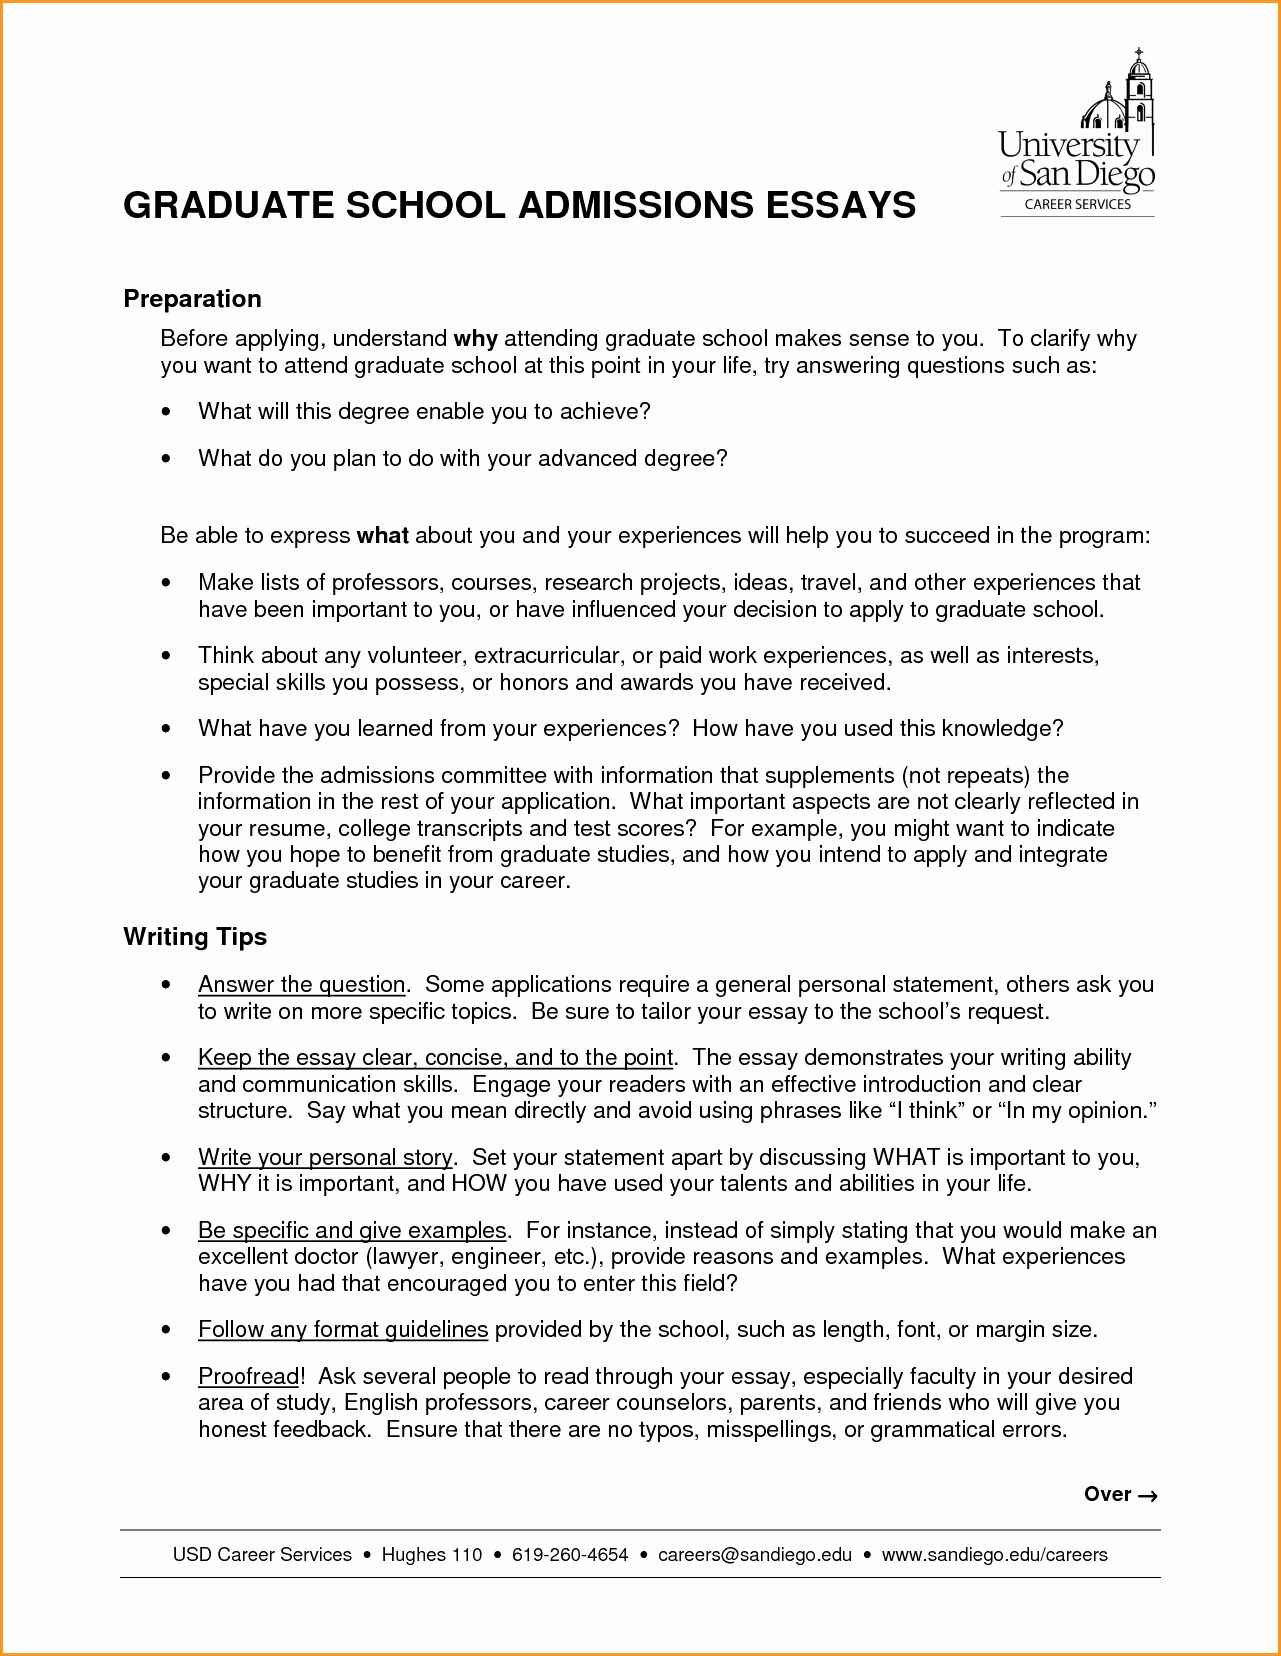 Nursing Resume Cover Letter Template Free - Experience Based Resume Best Recent Graduate Cover Letter Elegant